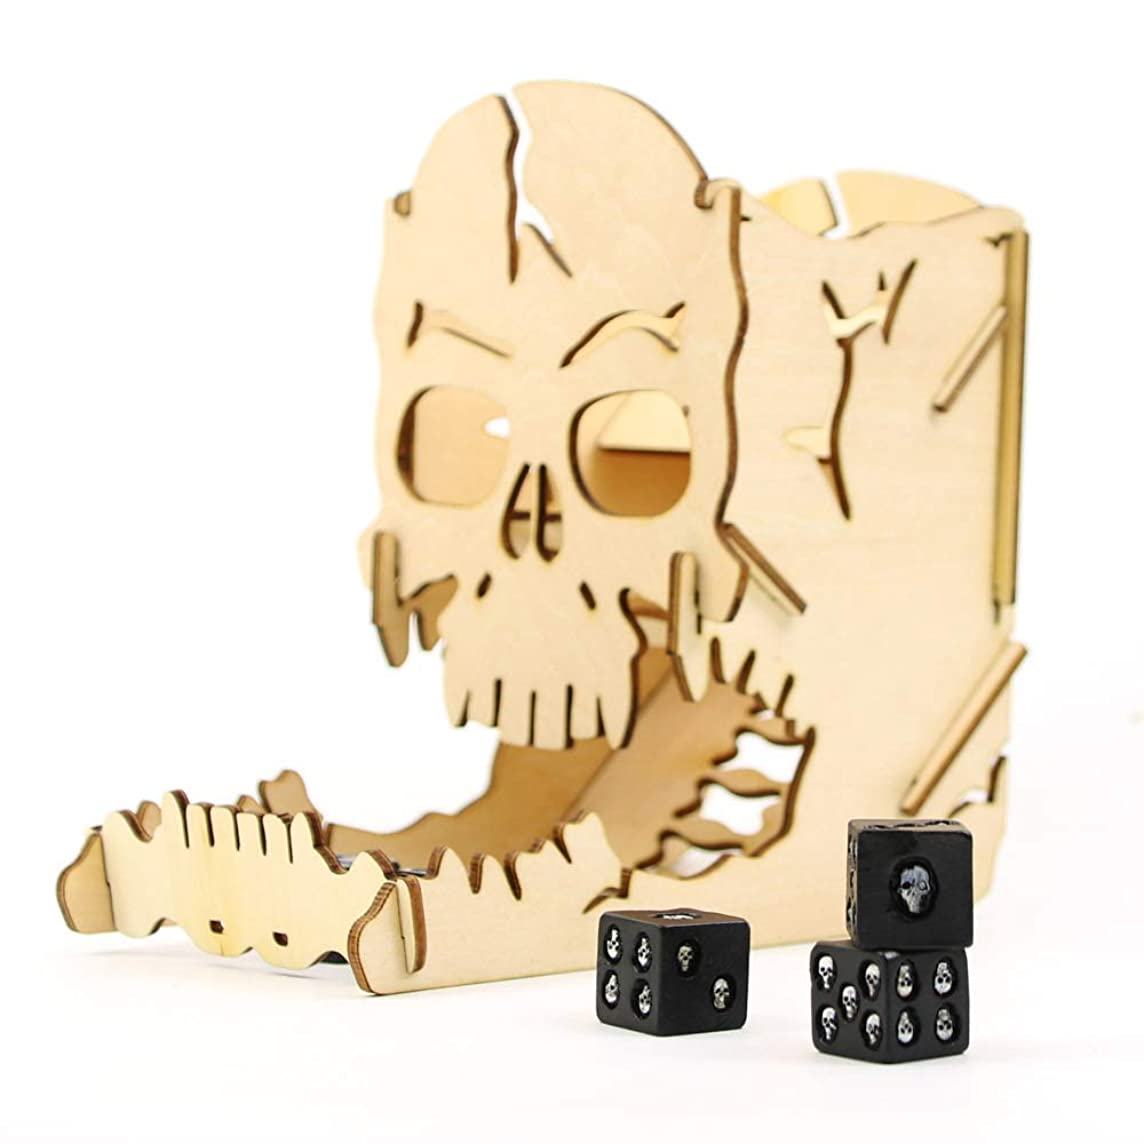 EP-Toy 3D Wooden Model, Scorpion Tower Party Party Drinking Creative Toys